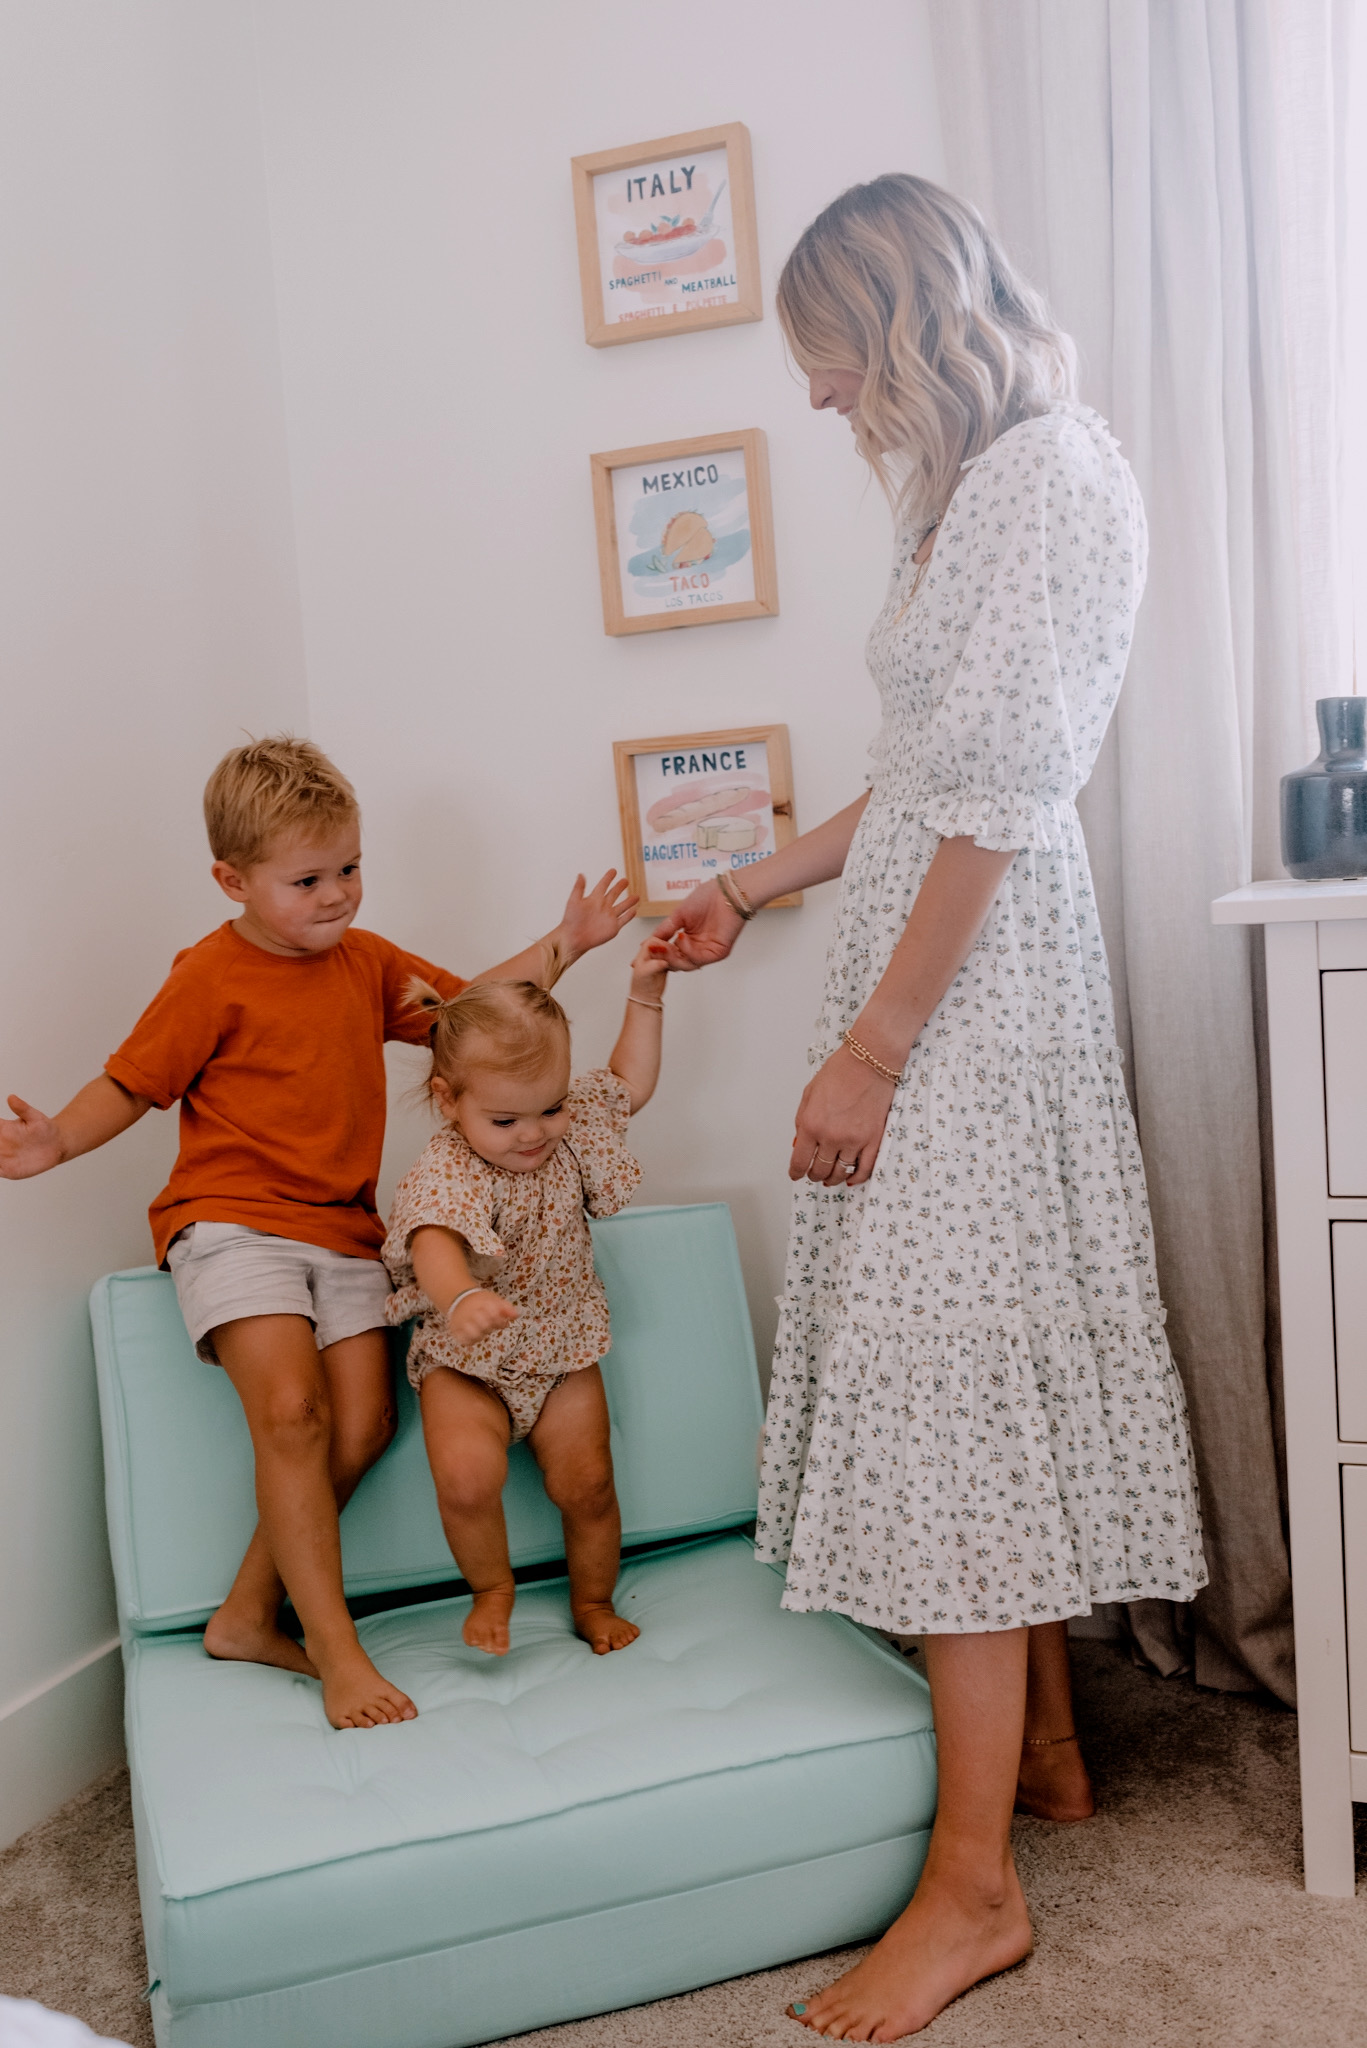 Walmart Decor by popular San Diego life and style blog, Navy Grace: image of a mom standing next to a young boy and girl standing together on a blue chair next to some framed world country prints.